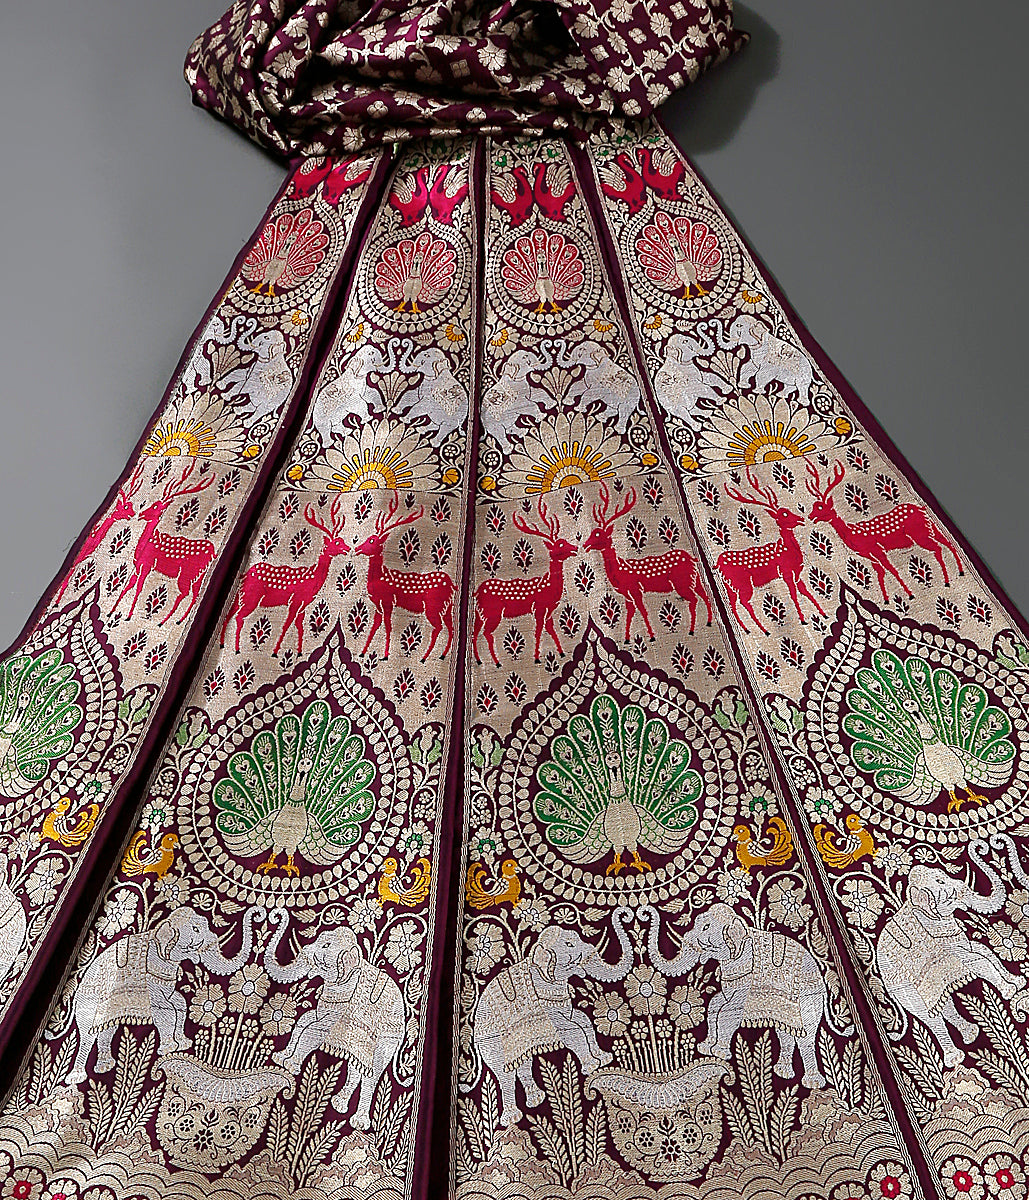 Handwoven Banarasi Shikargah Lehenga in wine color